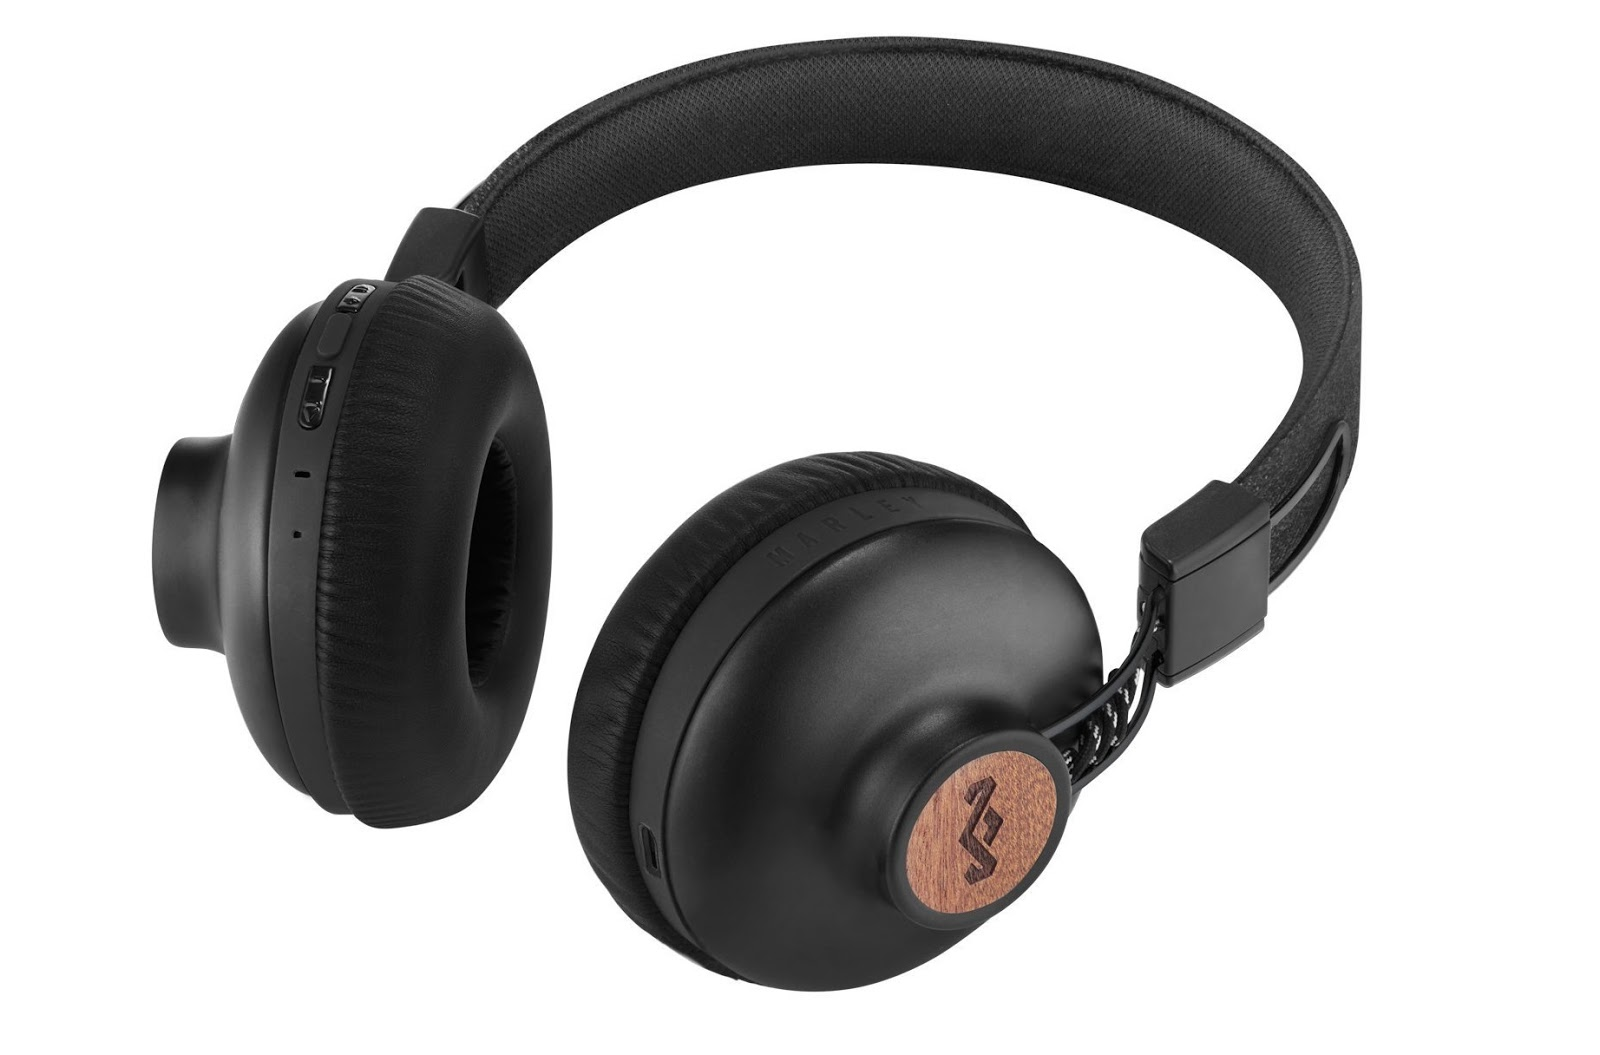 1882980cdf8 REVIEW: House of Marley Positive Vibration 2 Wireless Headphones ...